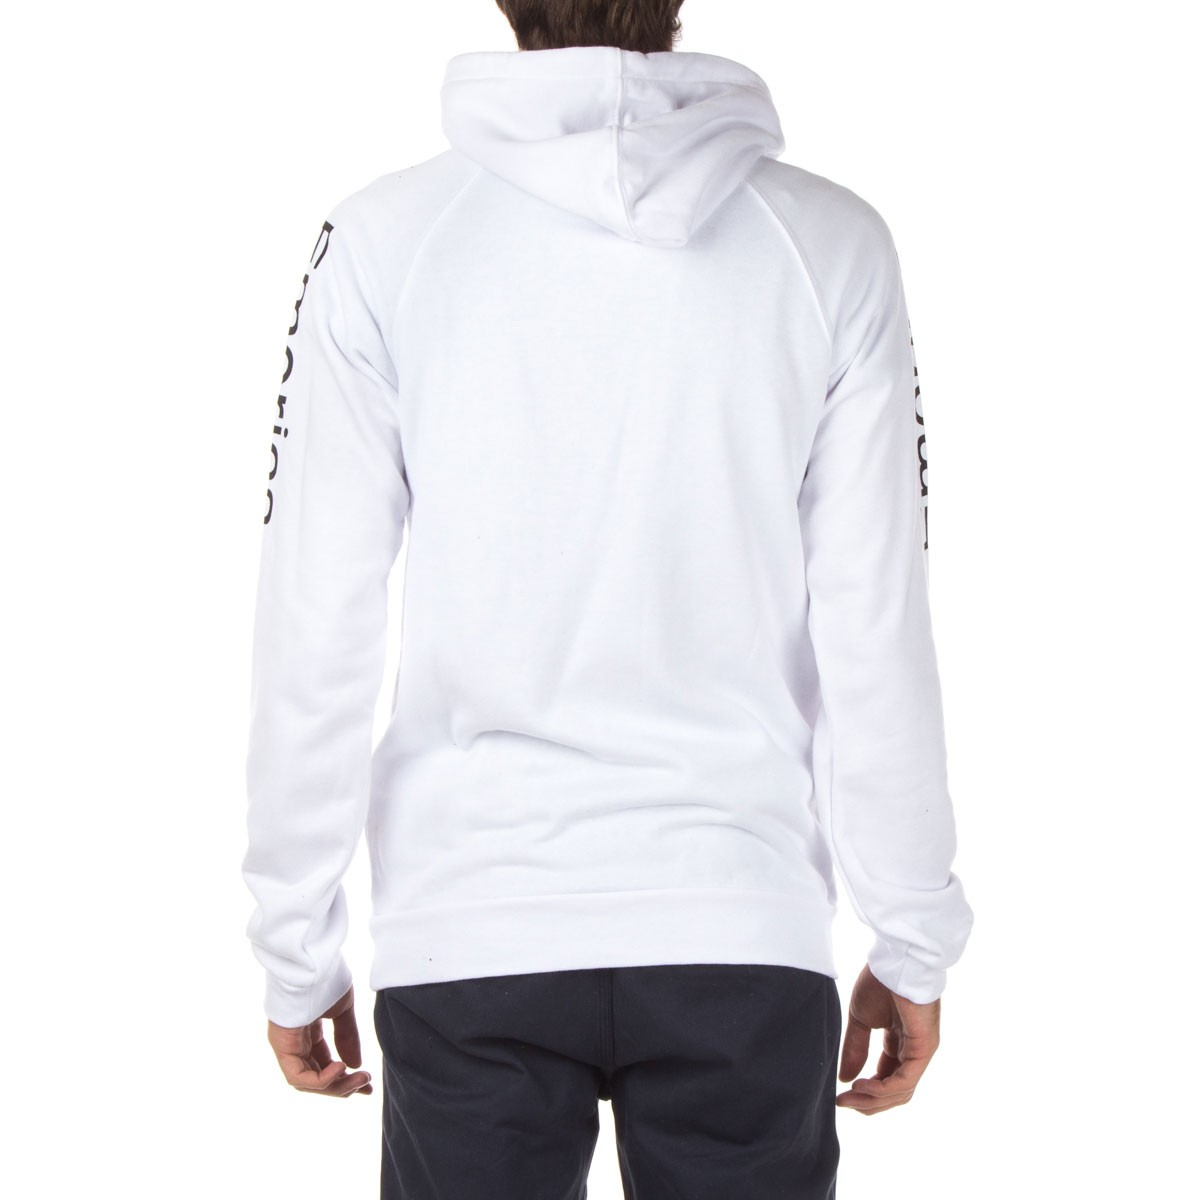 Pullover Hoodies Hoodies & Sweatshirts All Tops Hoodies & Sweatshirts View All Full-Zip Hoodies Pullover Hoodies Crewneck Sweaters View All Crew Neck Sweaters V-Neck Sweaters Your pull over hoodie is best layered over a t-shirt and under a vest or light spring or summer jacket.